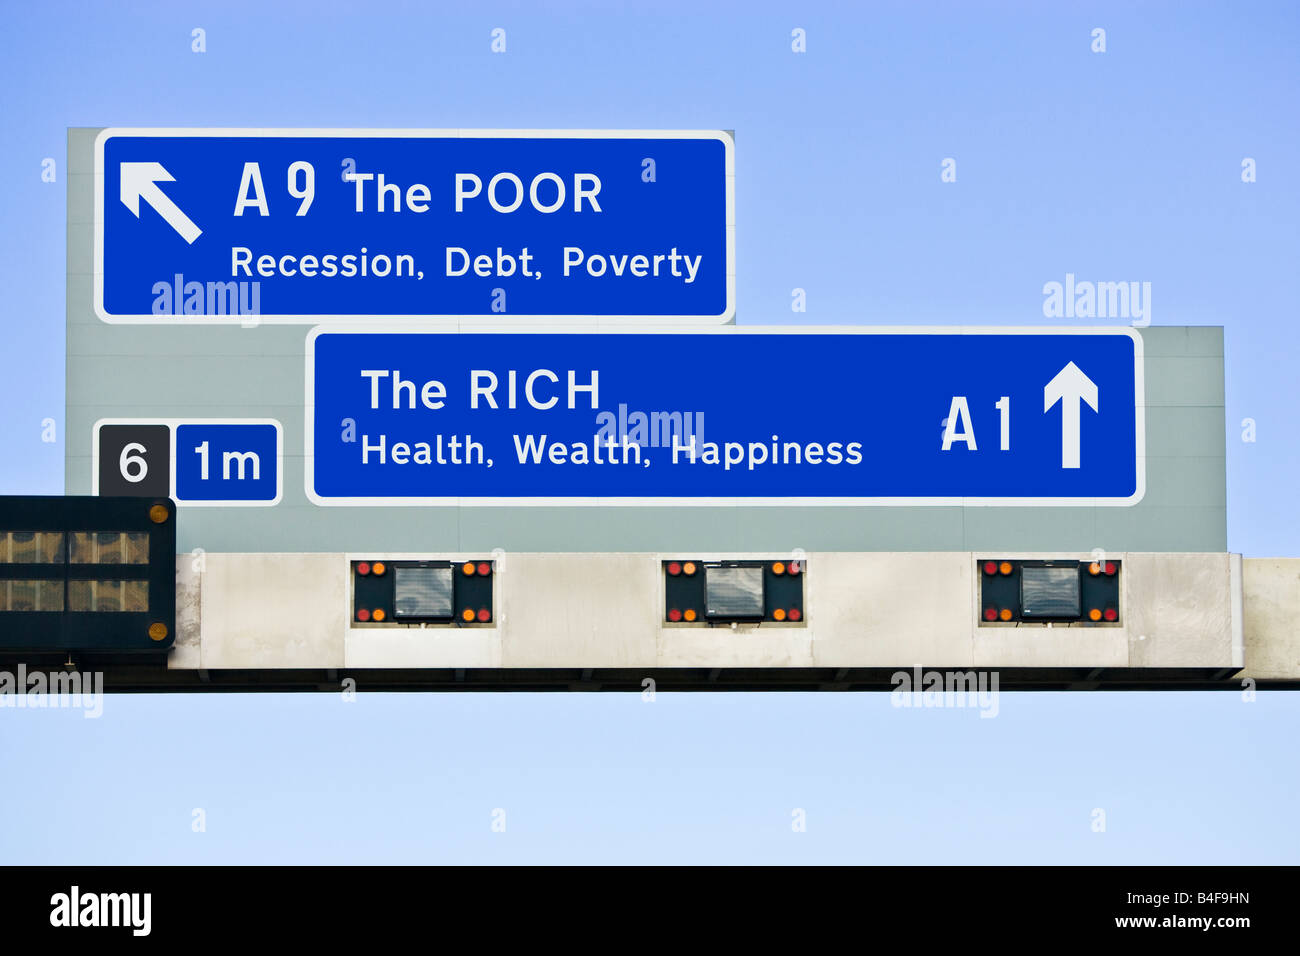 UK motorway sign financial concept economic differences between The Rich and The Poor / North / South England UK - Stock Image